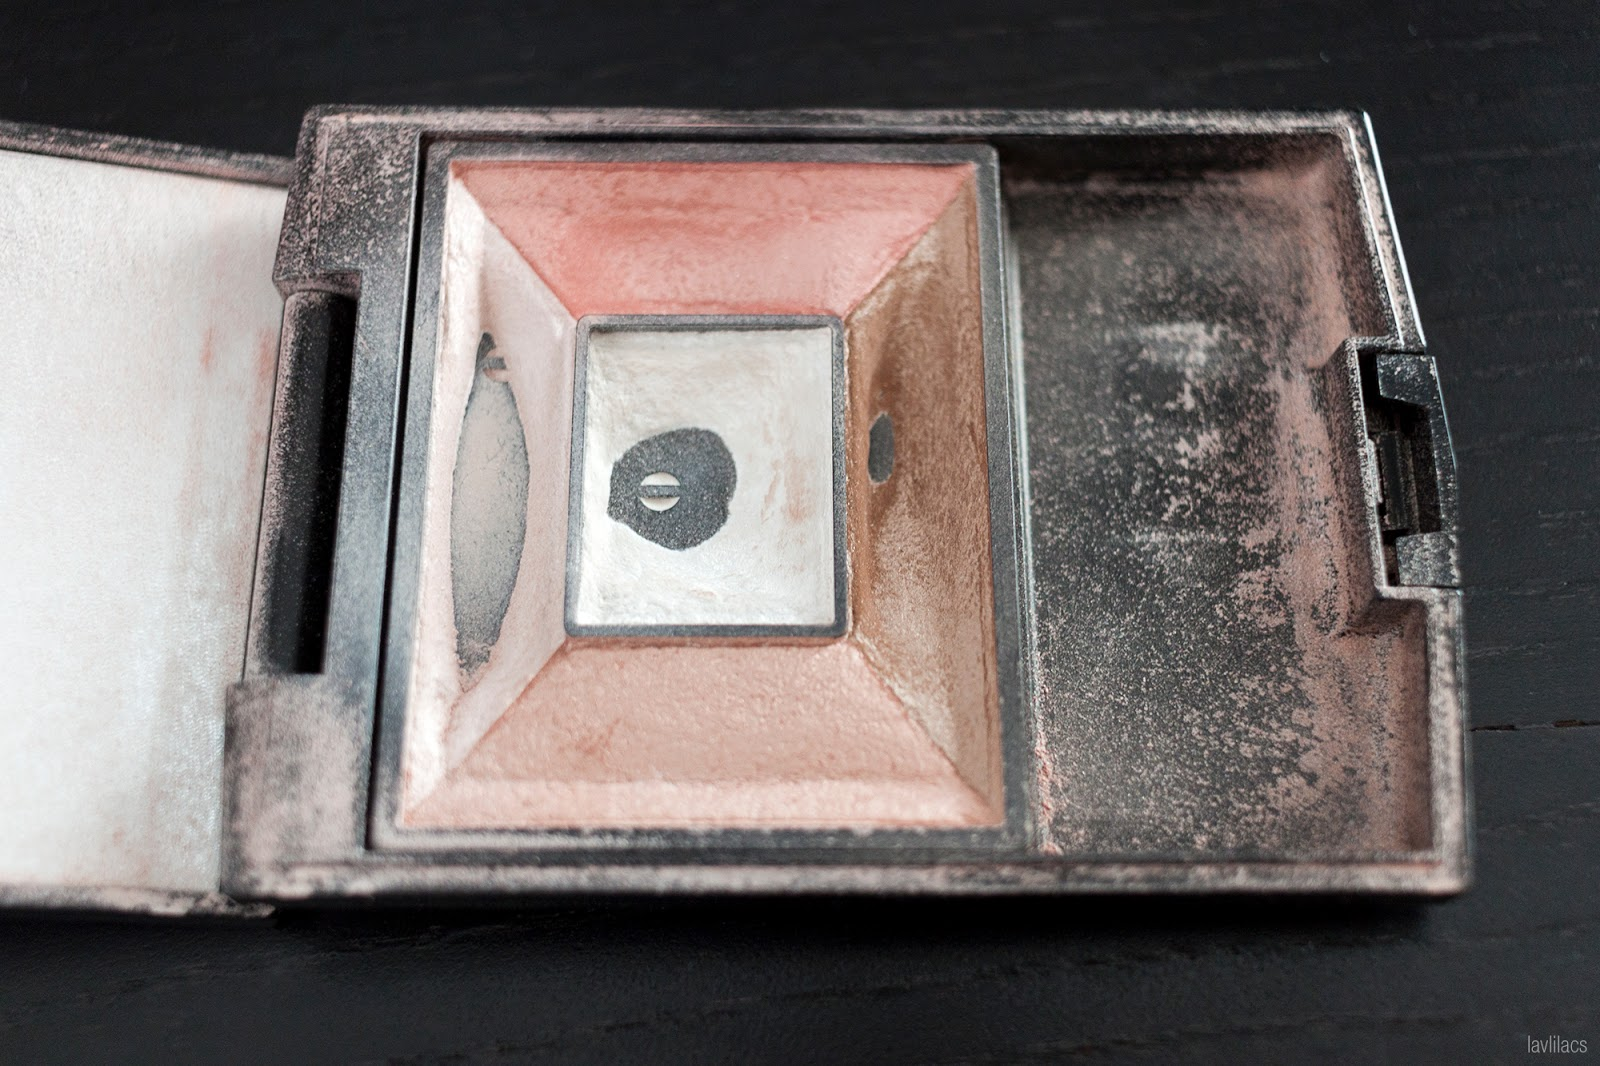 Maquillage Face Creator palette, Japanese cosmetics, Project Make a Dent end results